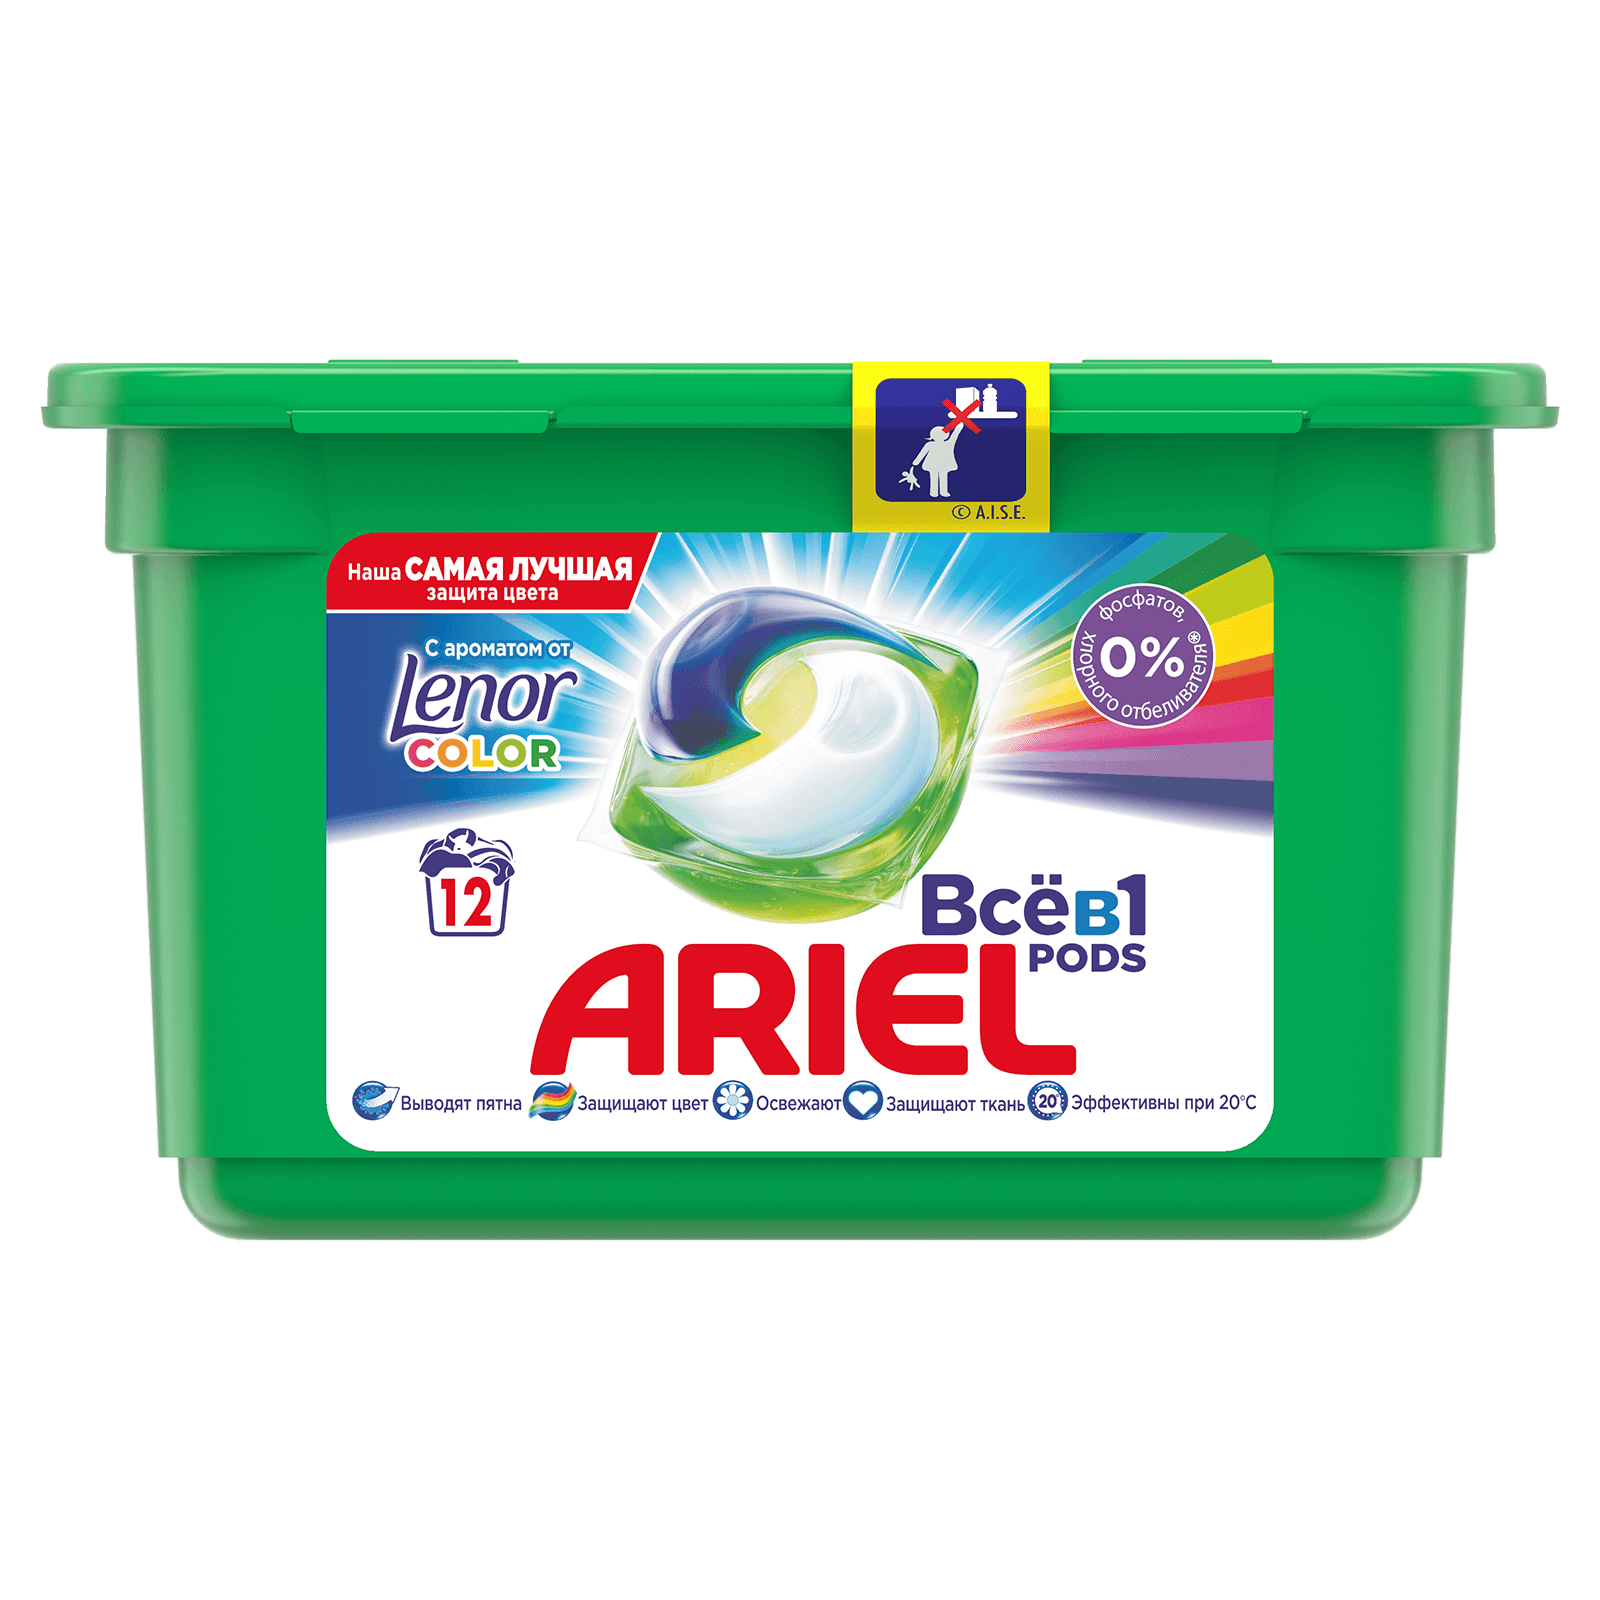 Ariel_Touch_of_Lenor_Color_Allin1_PODs_hero_12ct_1600x1600